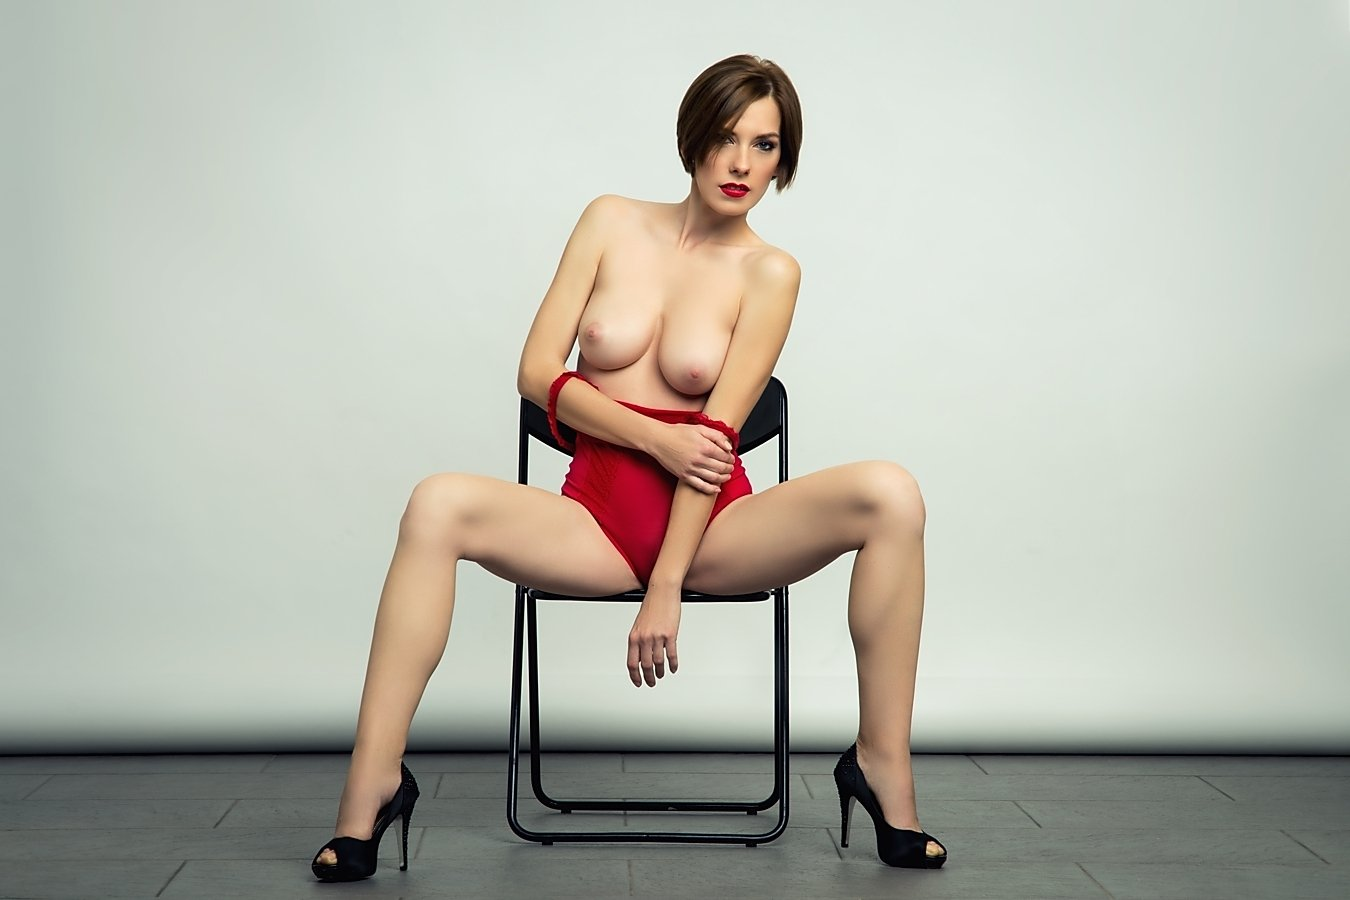 model, nude, naked, glamour, woman, female, color, body, sexy, sensual, curves, portrait, erotica, fine art, legs, red lips, fashion,, Lajos Csáki